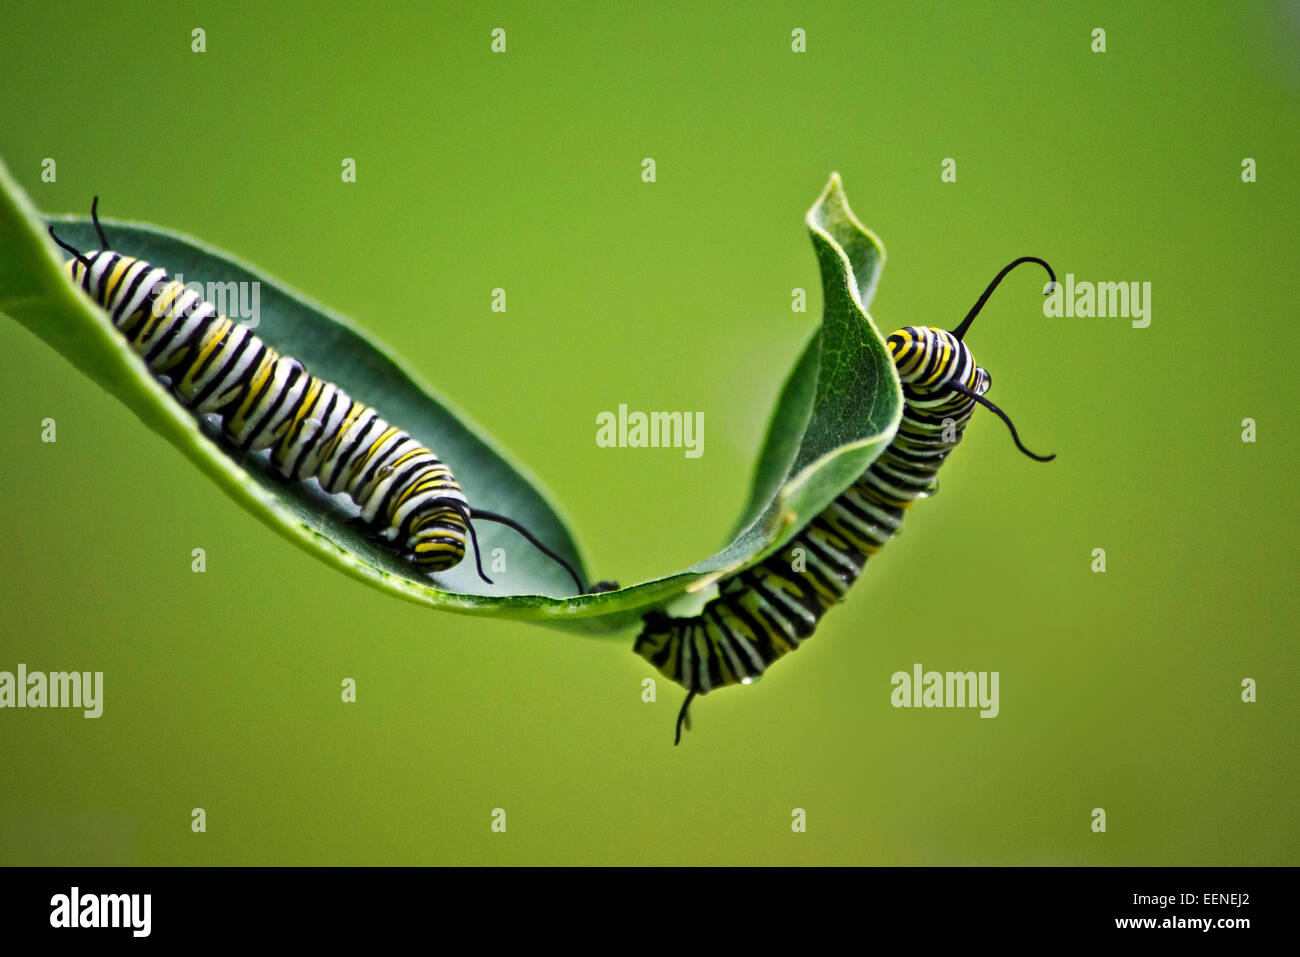 Monarch Caterpillars feeding on milkweed plant. - Stock Image